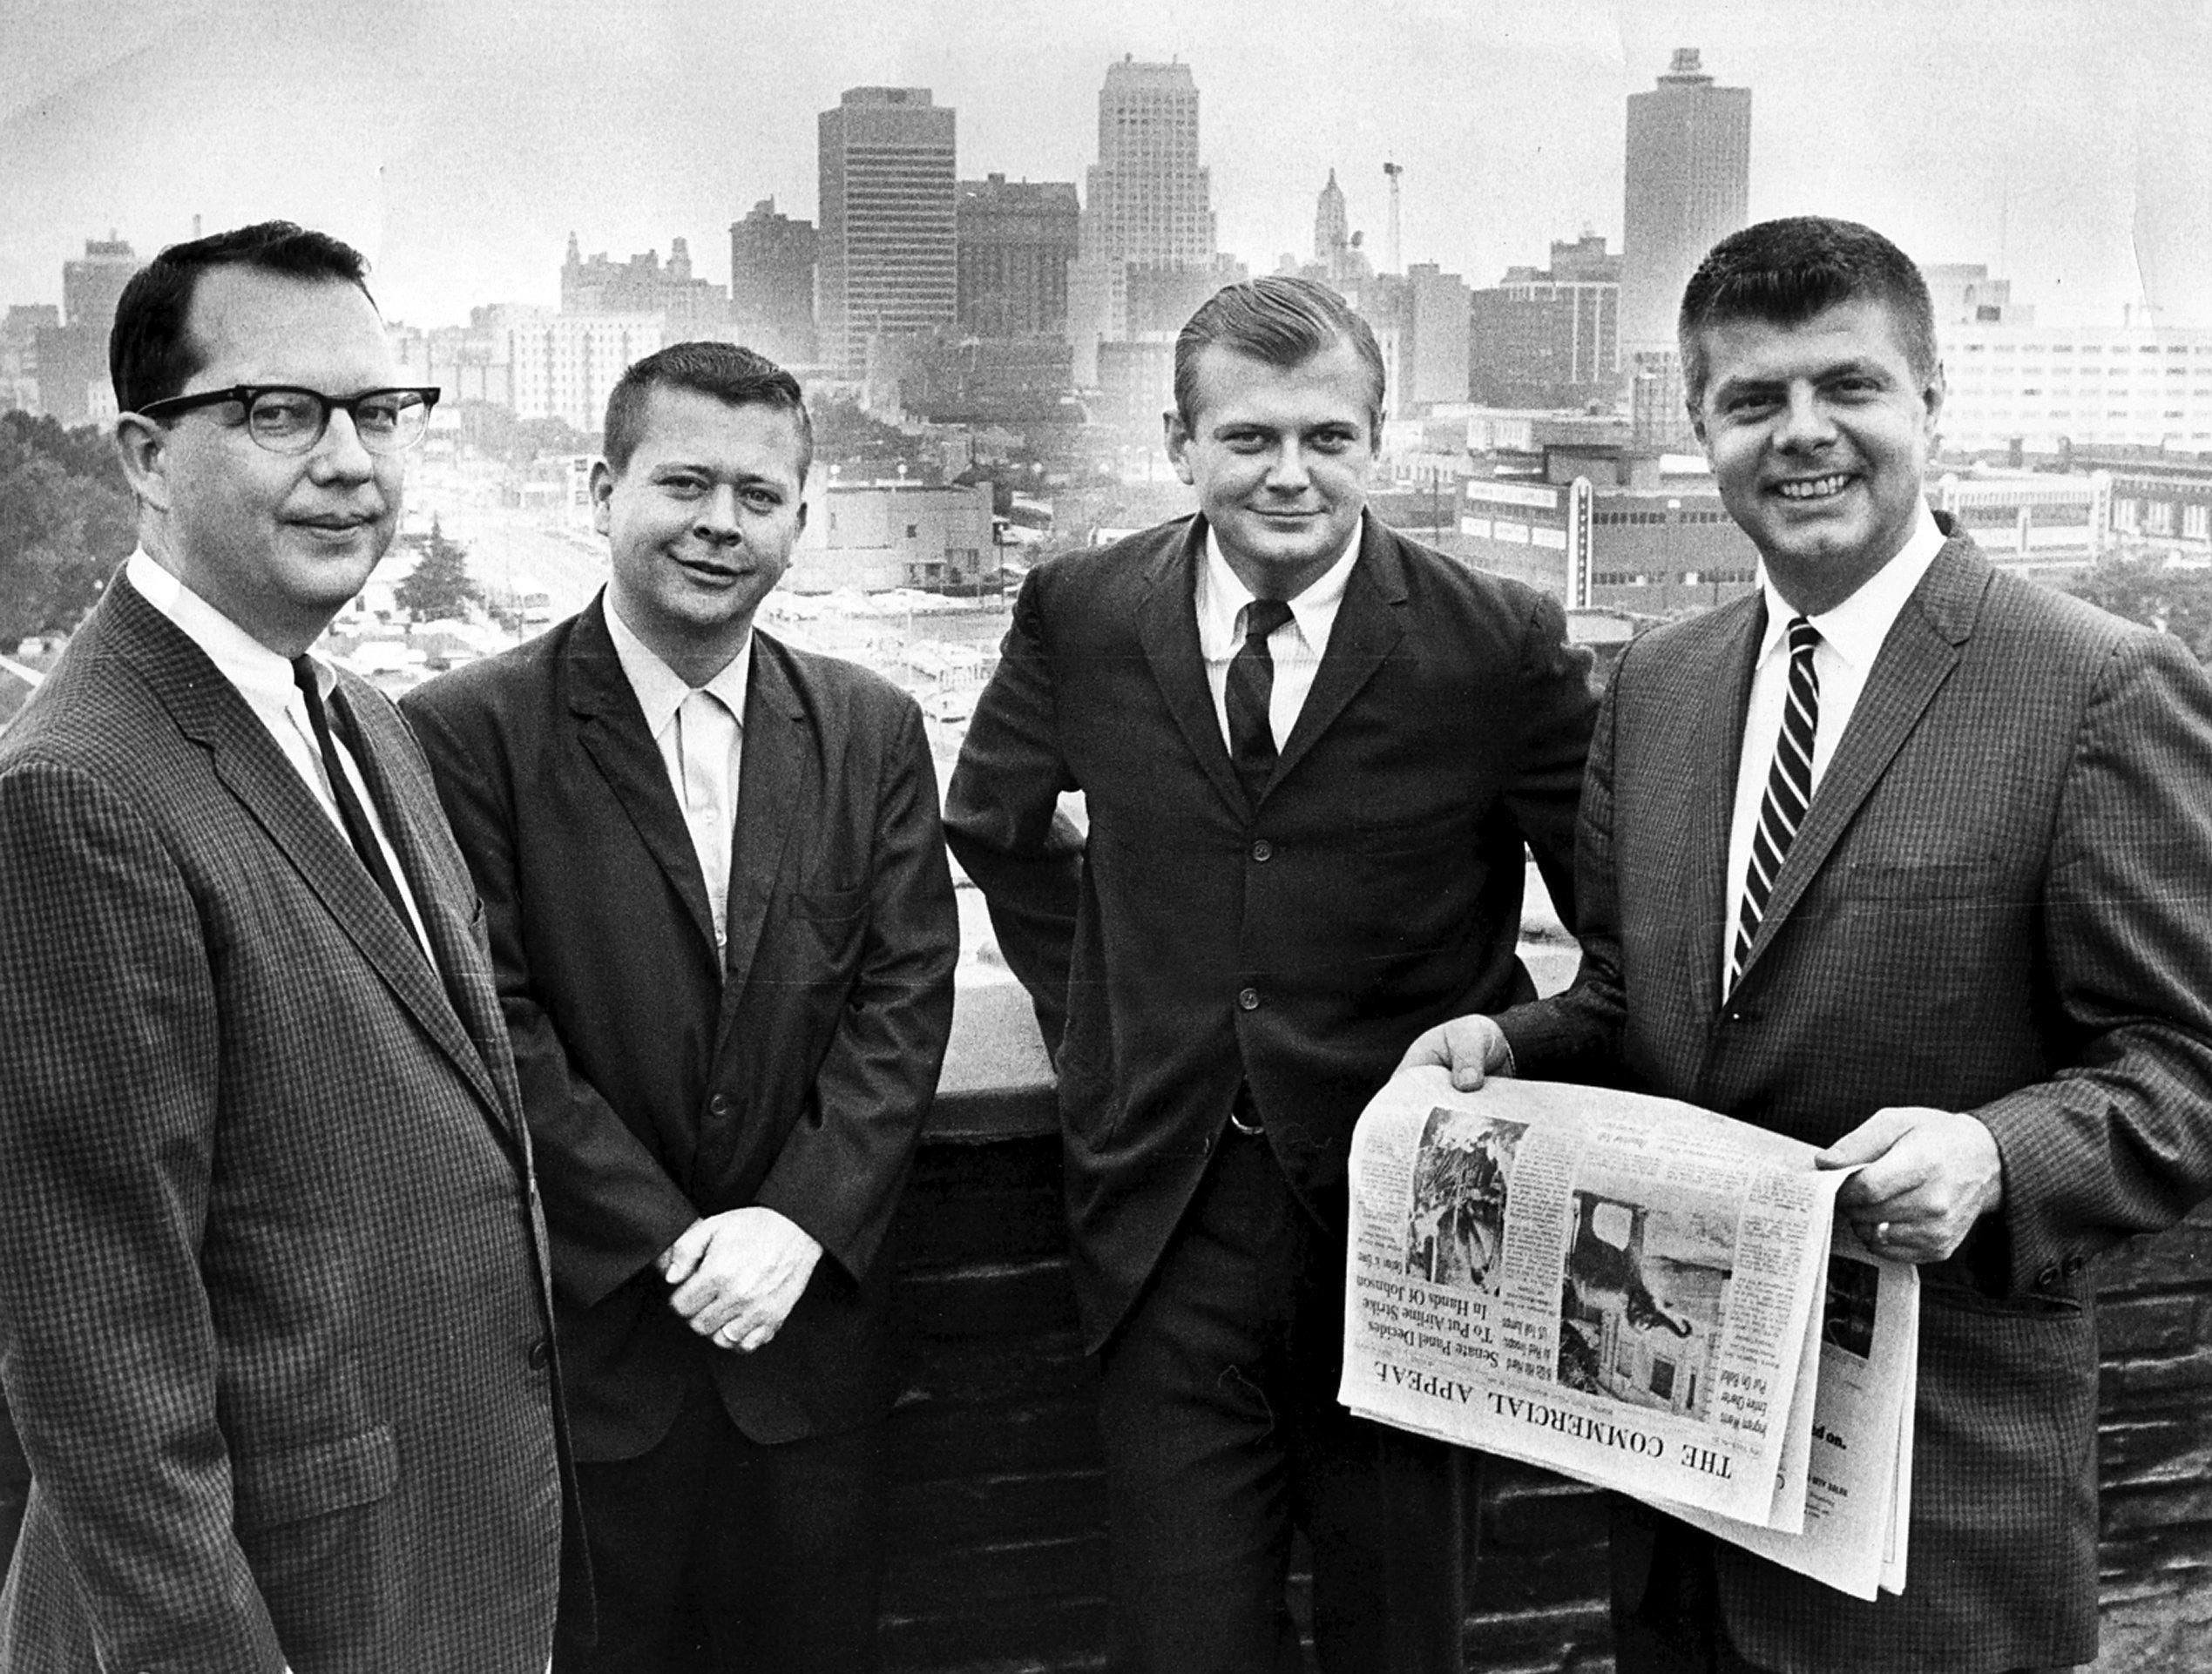 News executives named to new staff positions in July 1966 by Frank R. Ahlgren, editor of The Commercial Appeal, are (from left) James Kilpatrick, night city editor; Kyle Griffin, sports news editor; Angus G. McEachran Jr., assistant city editor; and Granville Allison Jr., city editor.